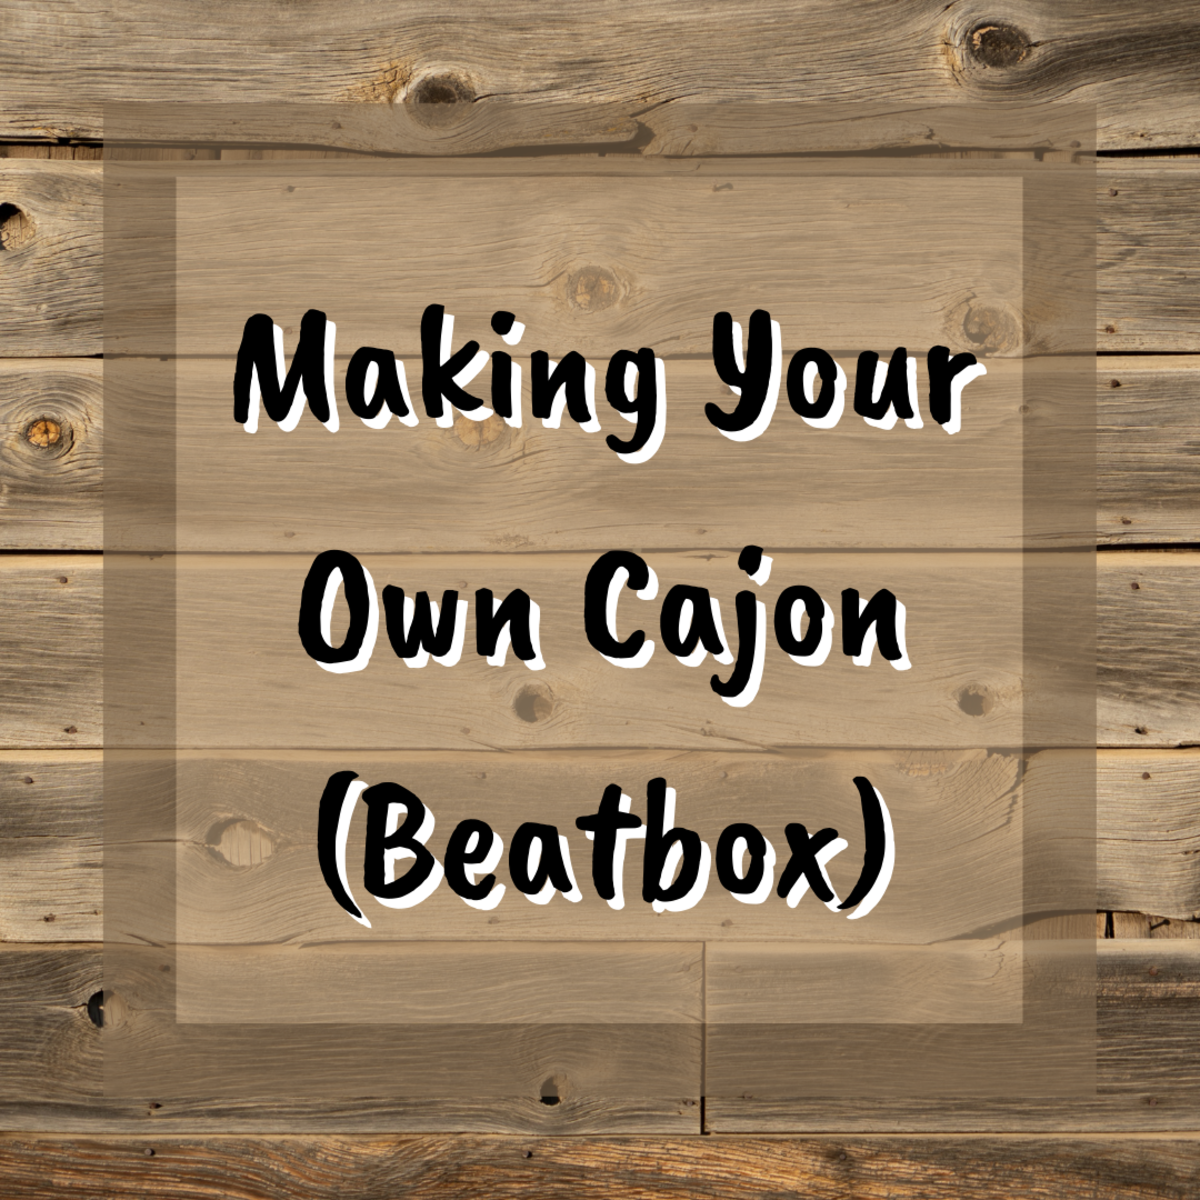 Learn how to create your own cajon, also known as a beatbox or box drum. This easy tutorial provides step-by-step instructions.